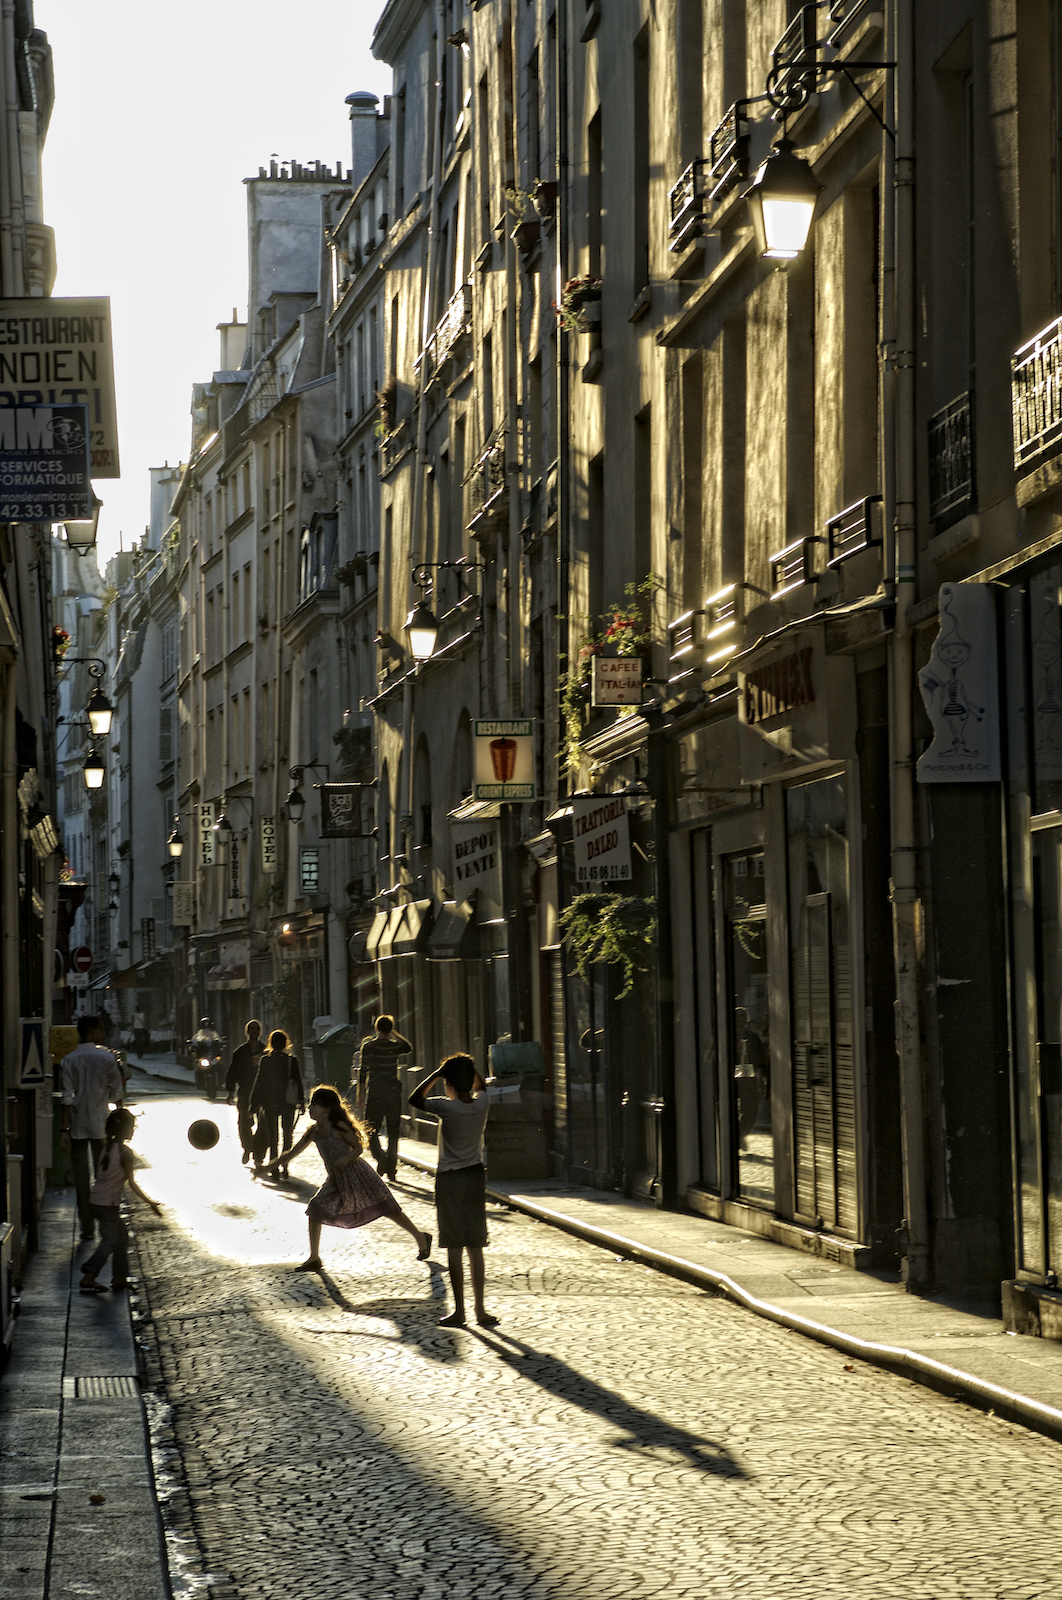 Children play on Rue Saint Sauveur - Paris, France.jpg